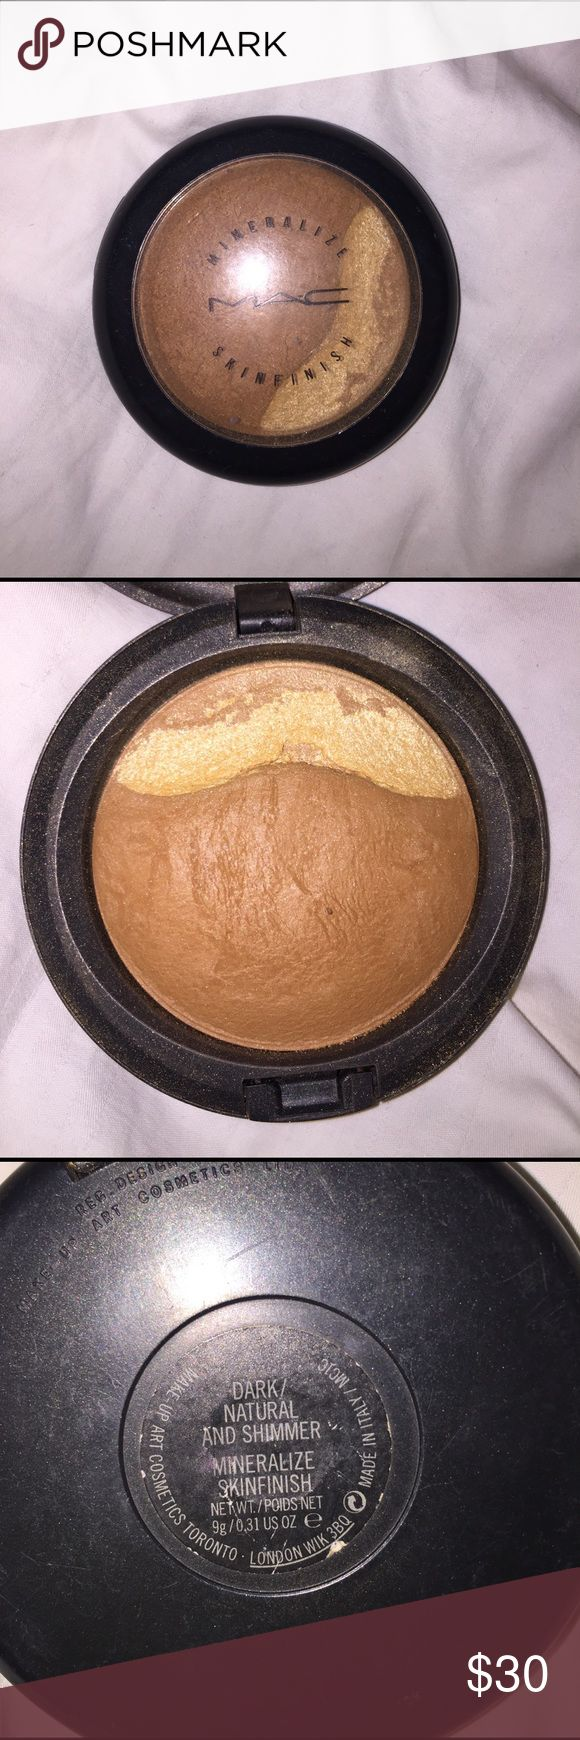 MAC bronzer/highlighter Mac bronzer and highlighter barely used. Accepting offers. Bundle up for discounts MAC Cosmetics Makeup Bronzer